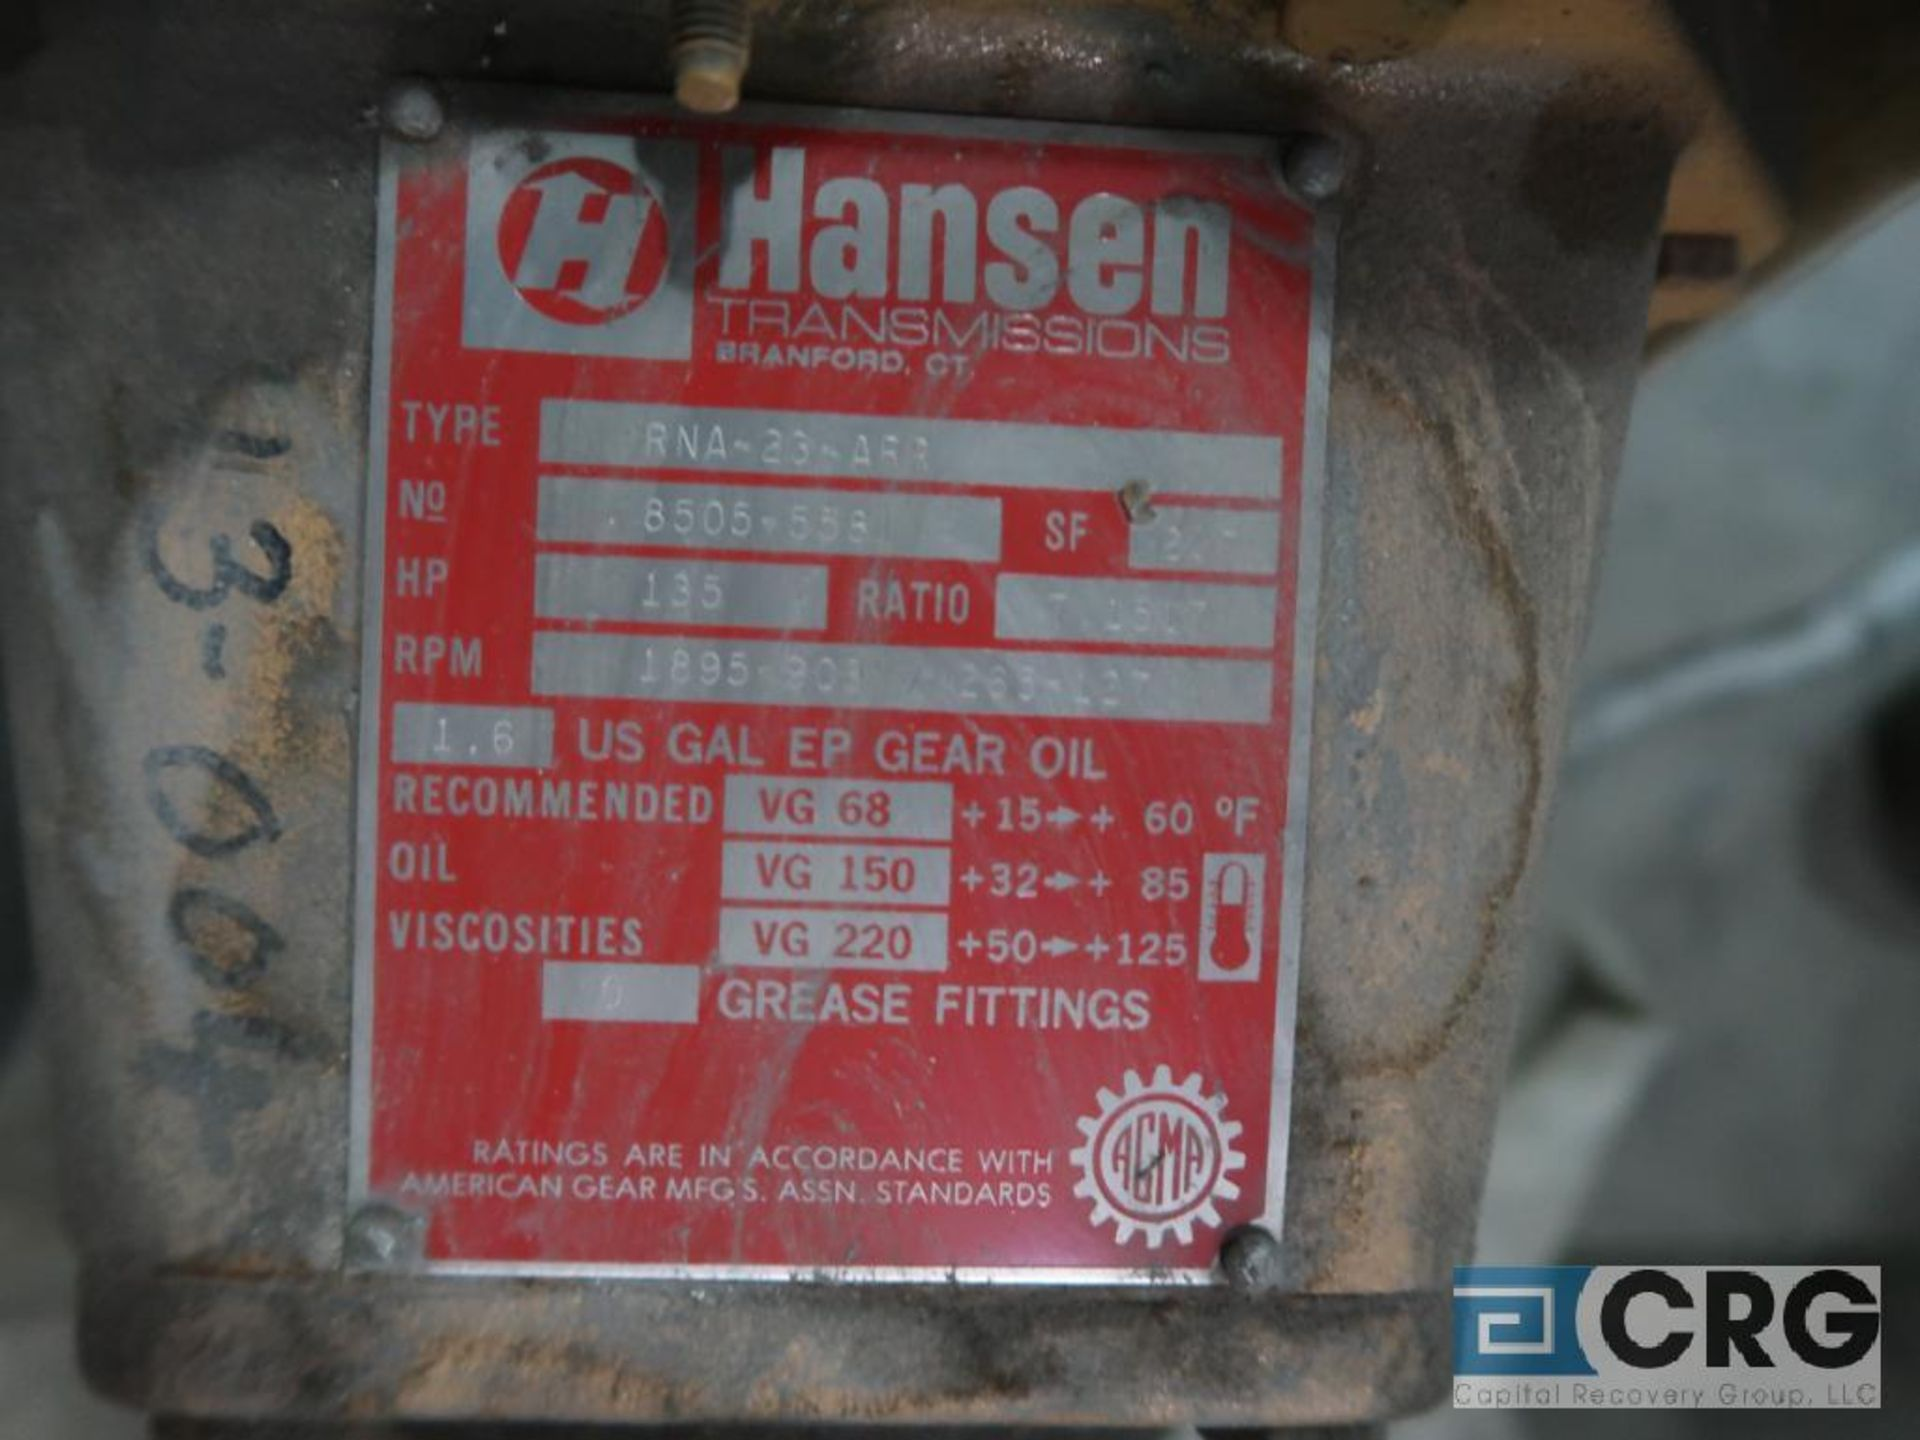 Hanson RNA22ARB parallel gear drive, ratio 17.1517, 1895/908/265-27 RPM (Finish Building) - Image 2 of 2